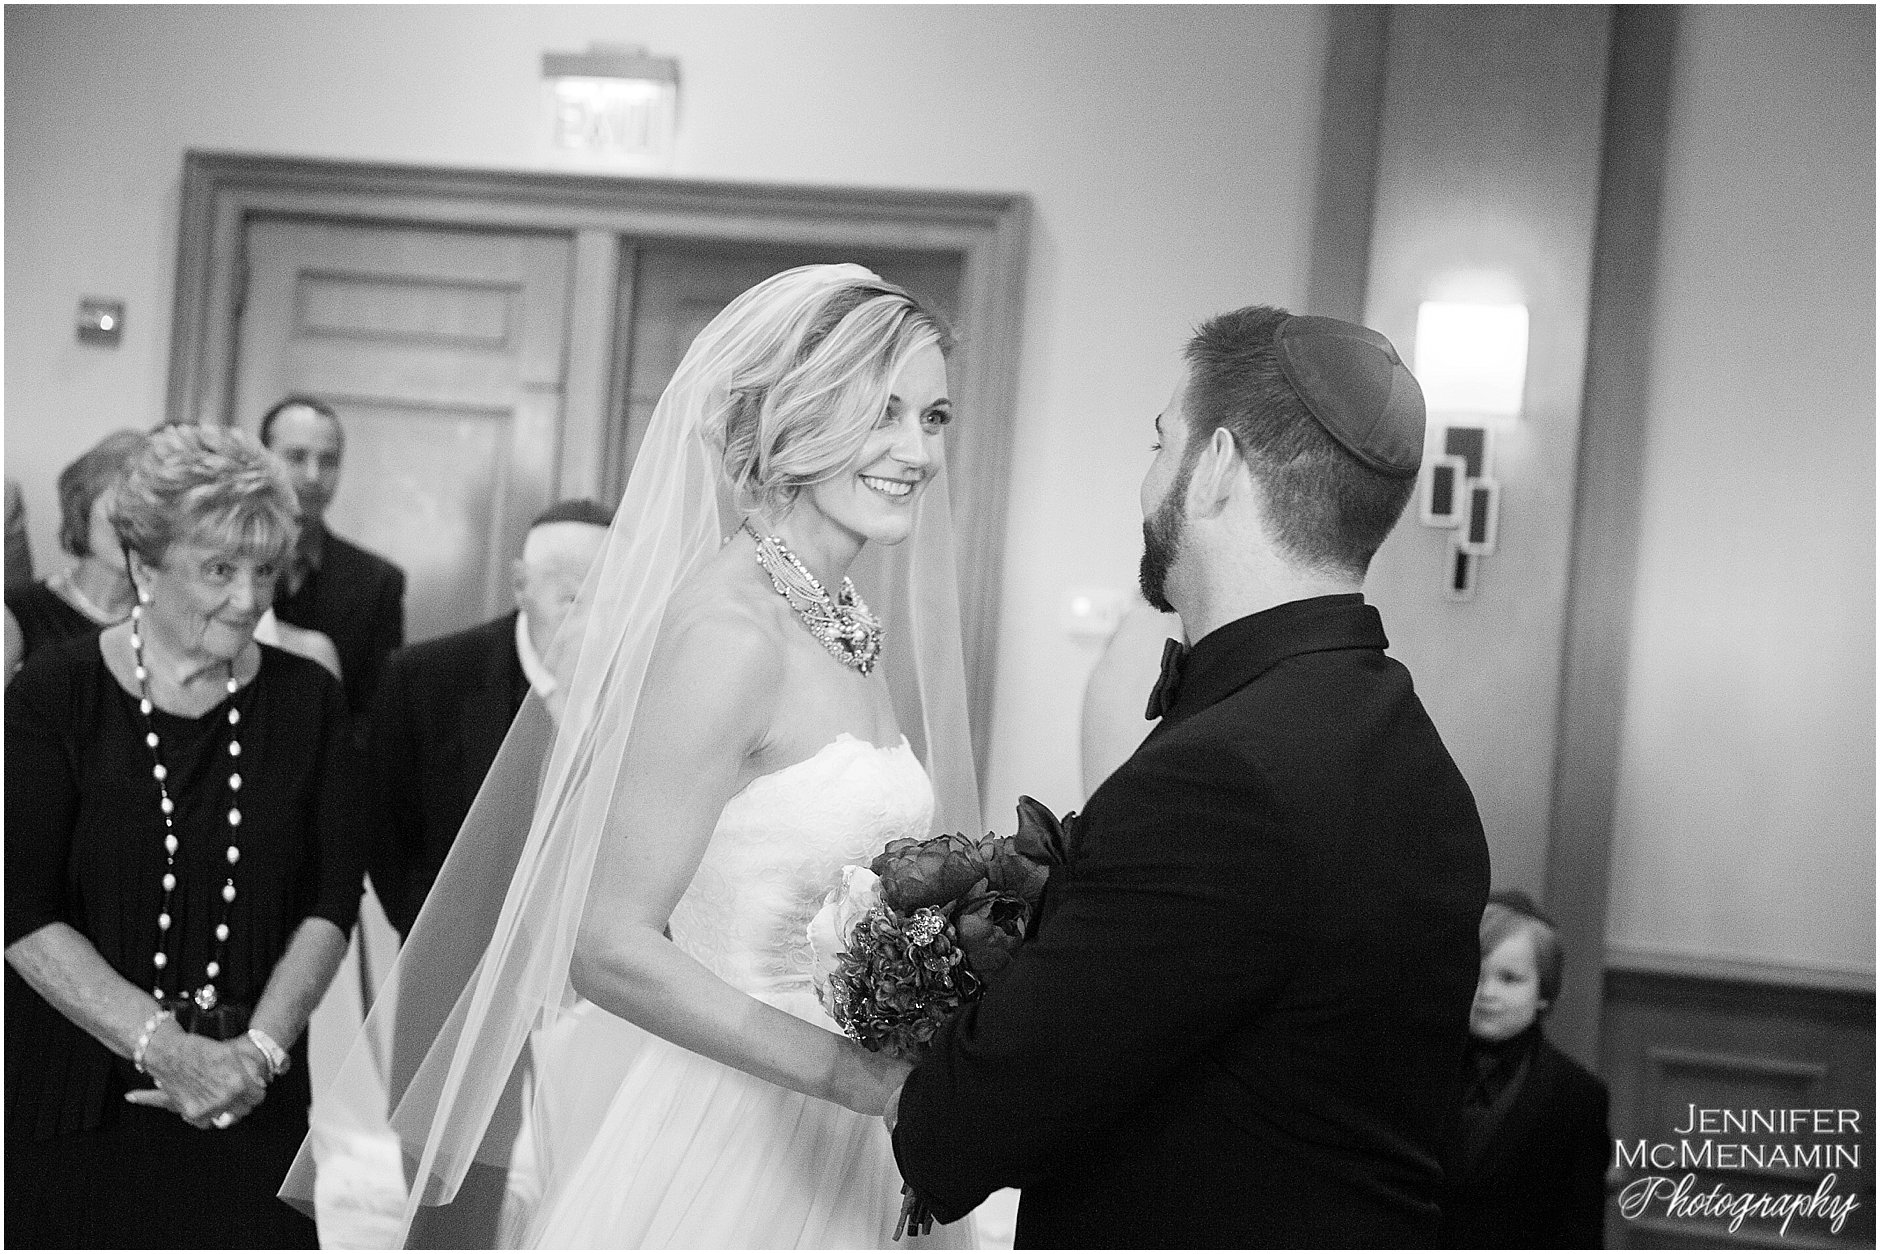 030-MorrisPustilnik_01654-0318_Jennifer-McMenamin-Photography-Royal-Sonesta-Harbor-Court-Hotel-wedding-Baltimore-wedding-photographer